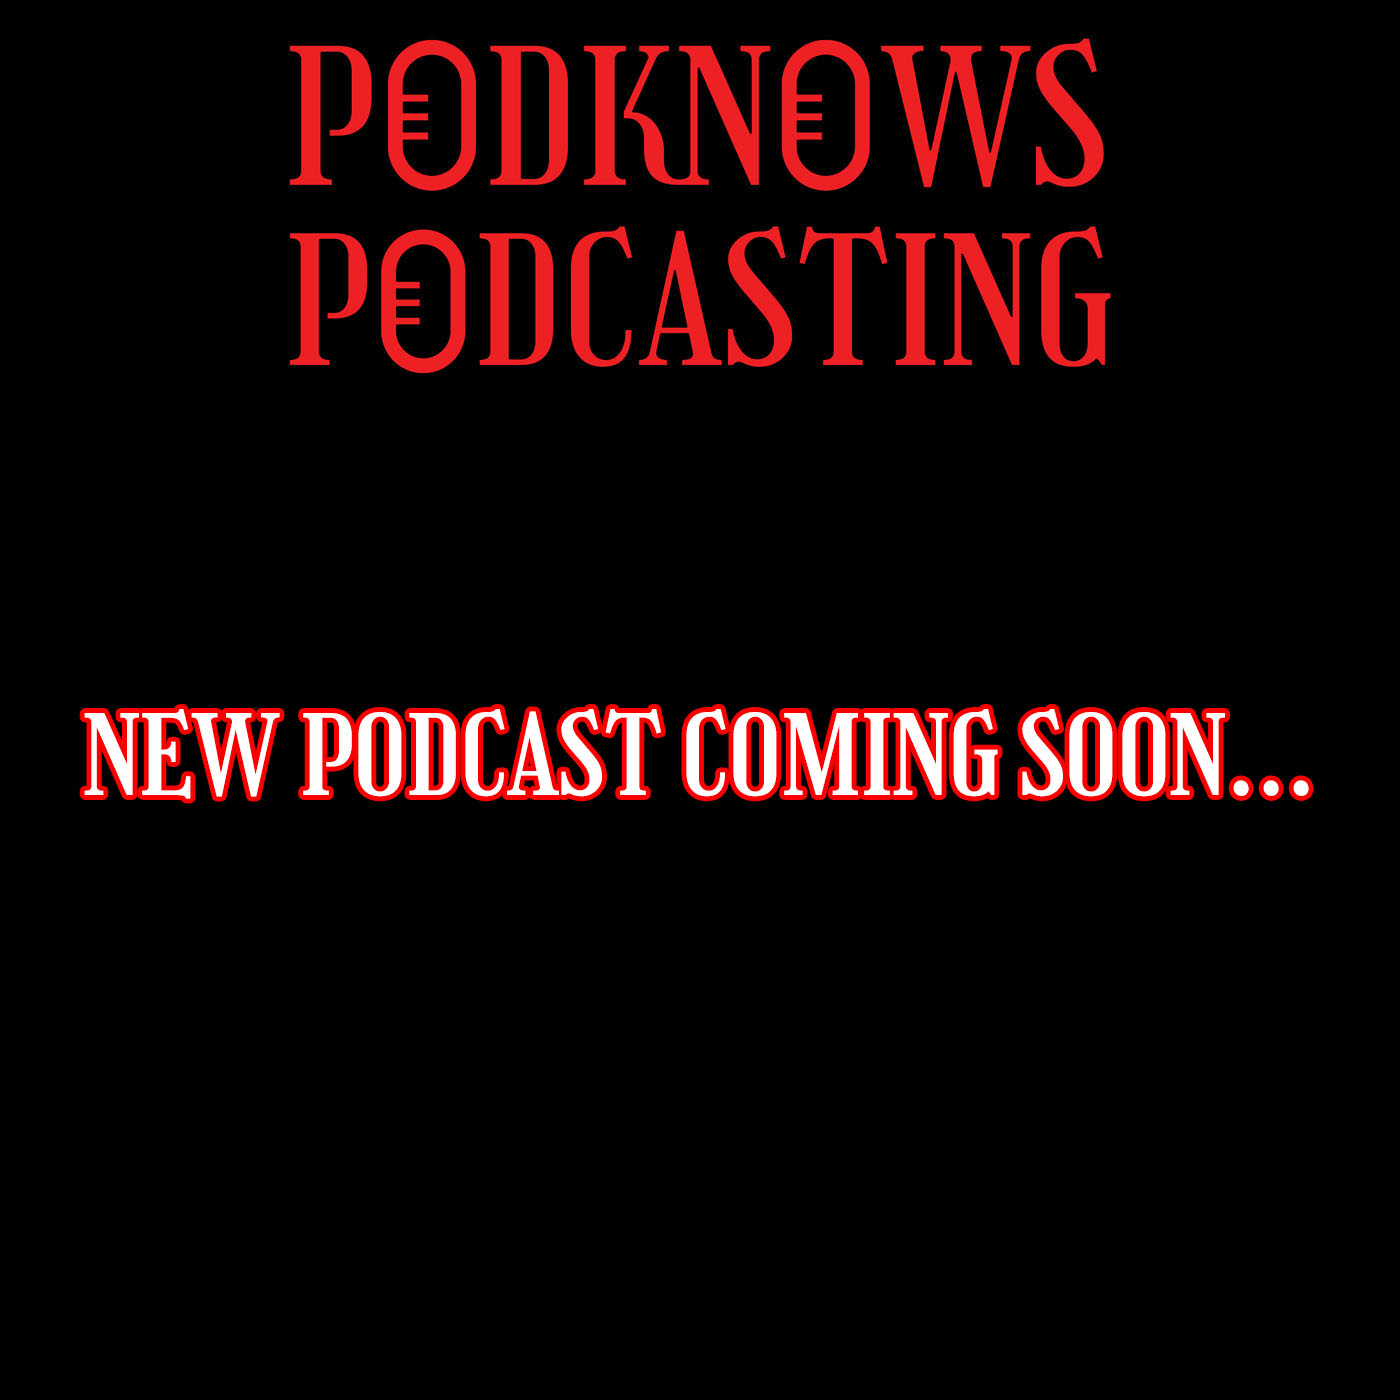 Podknows New podcast coming soon